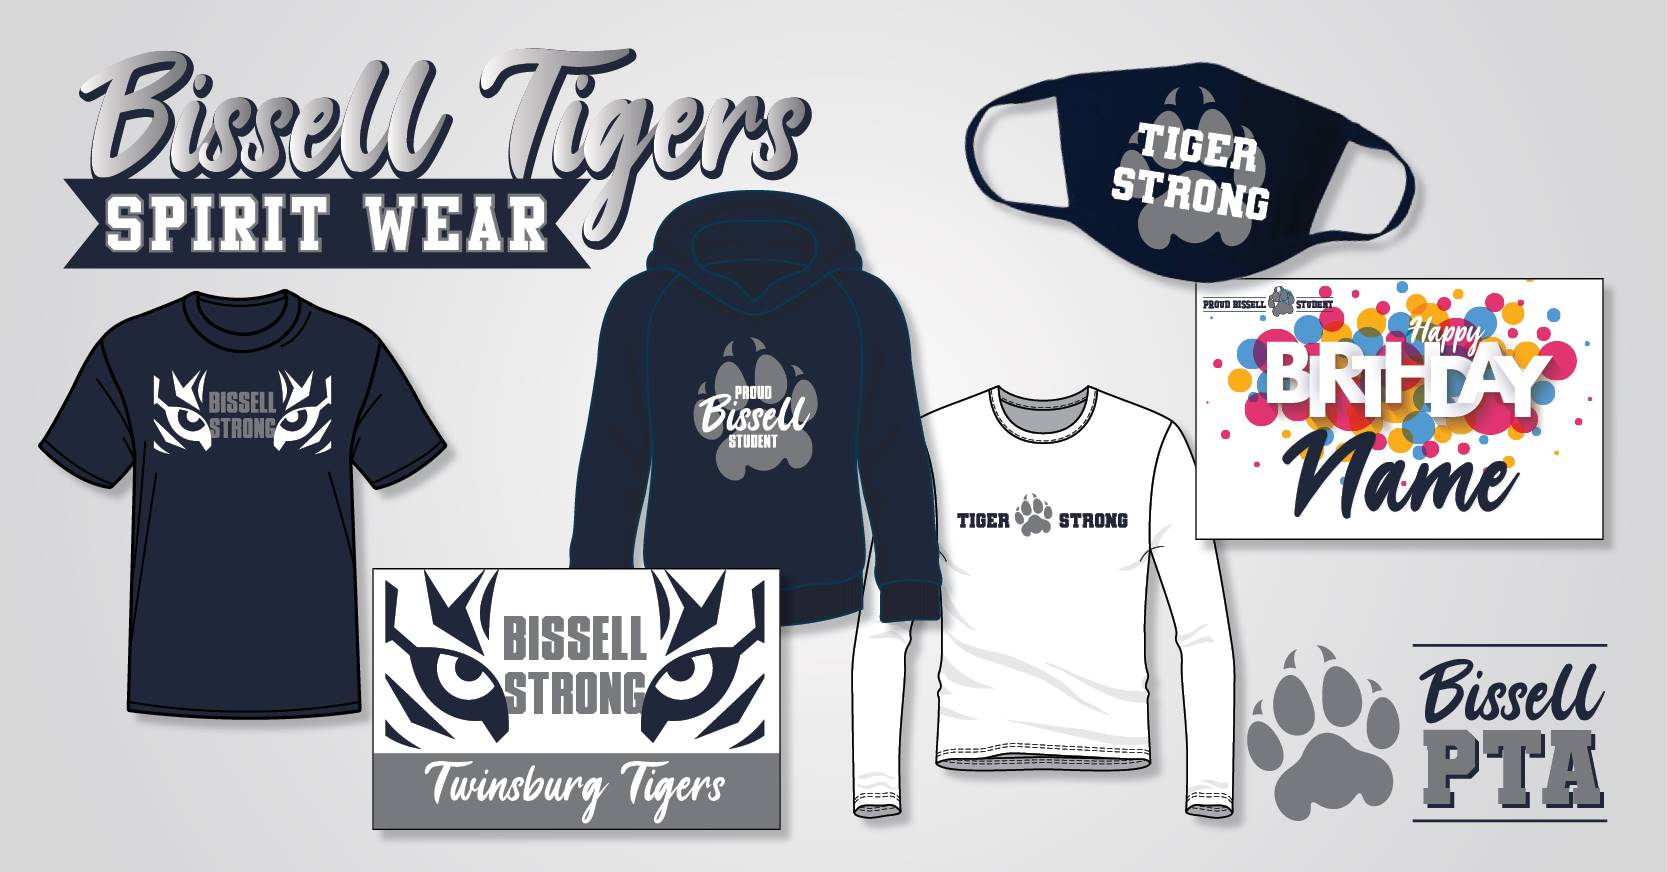 Bissell Tiger Spirit Wear